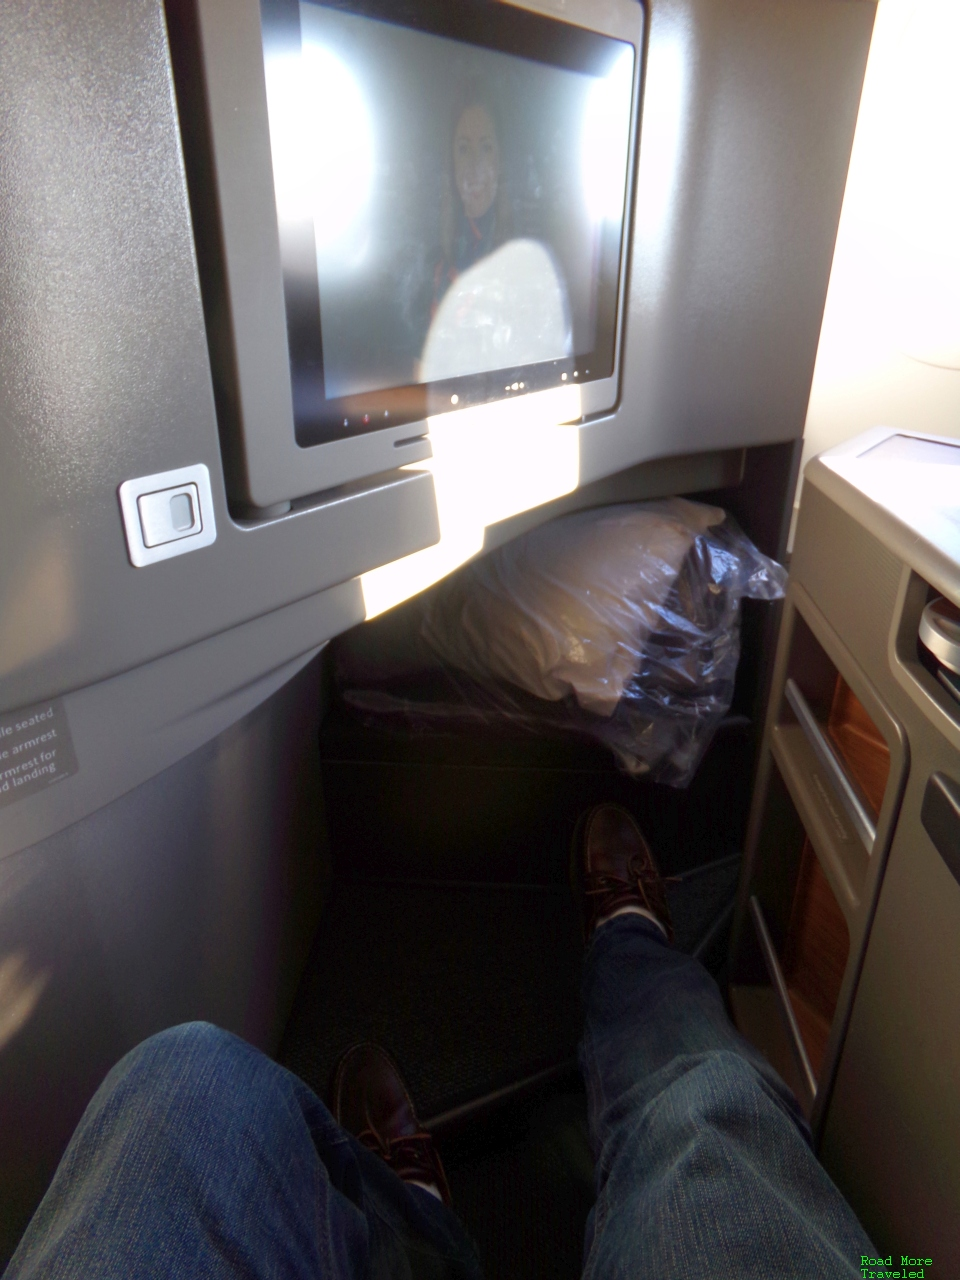 American Airlines A321T First Class seat - legroom and pitch